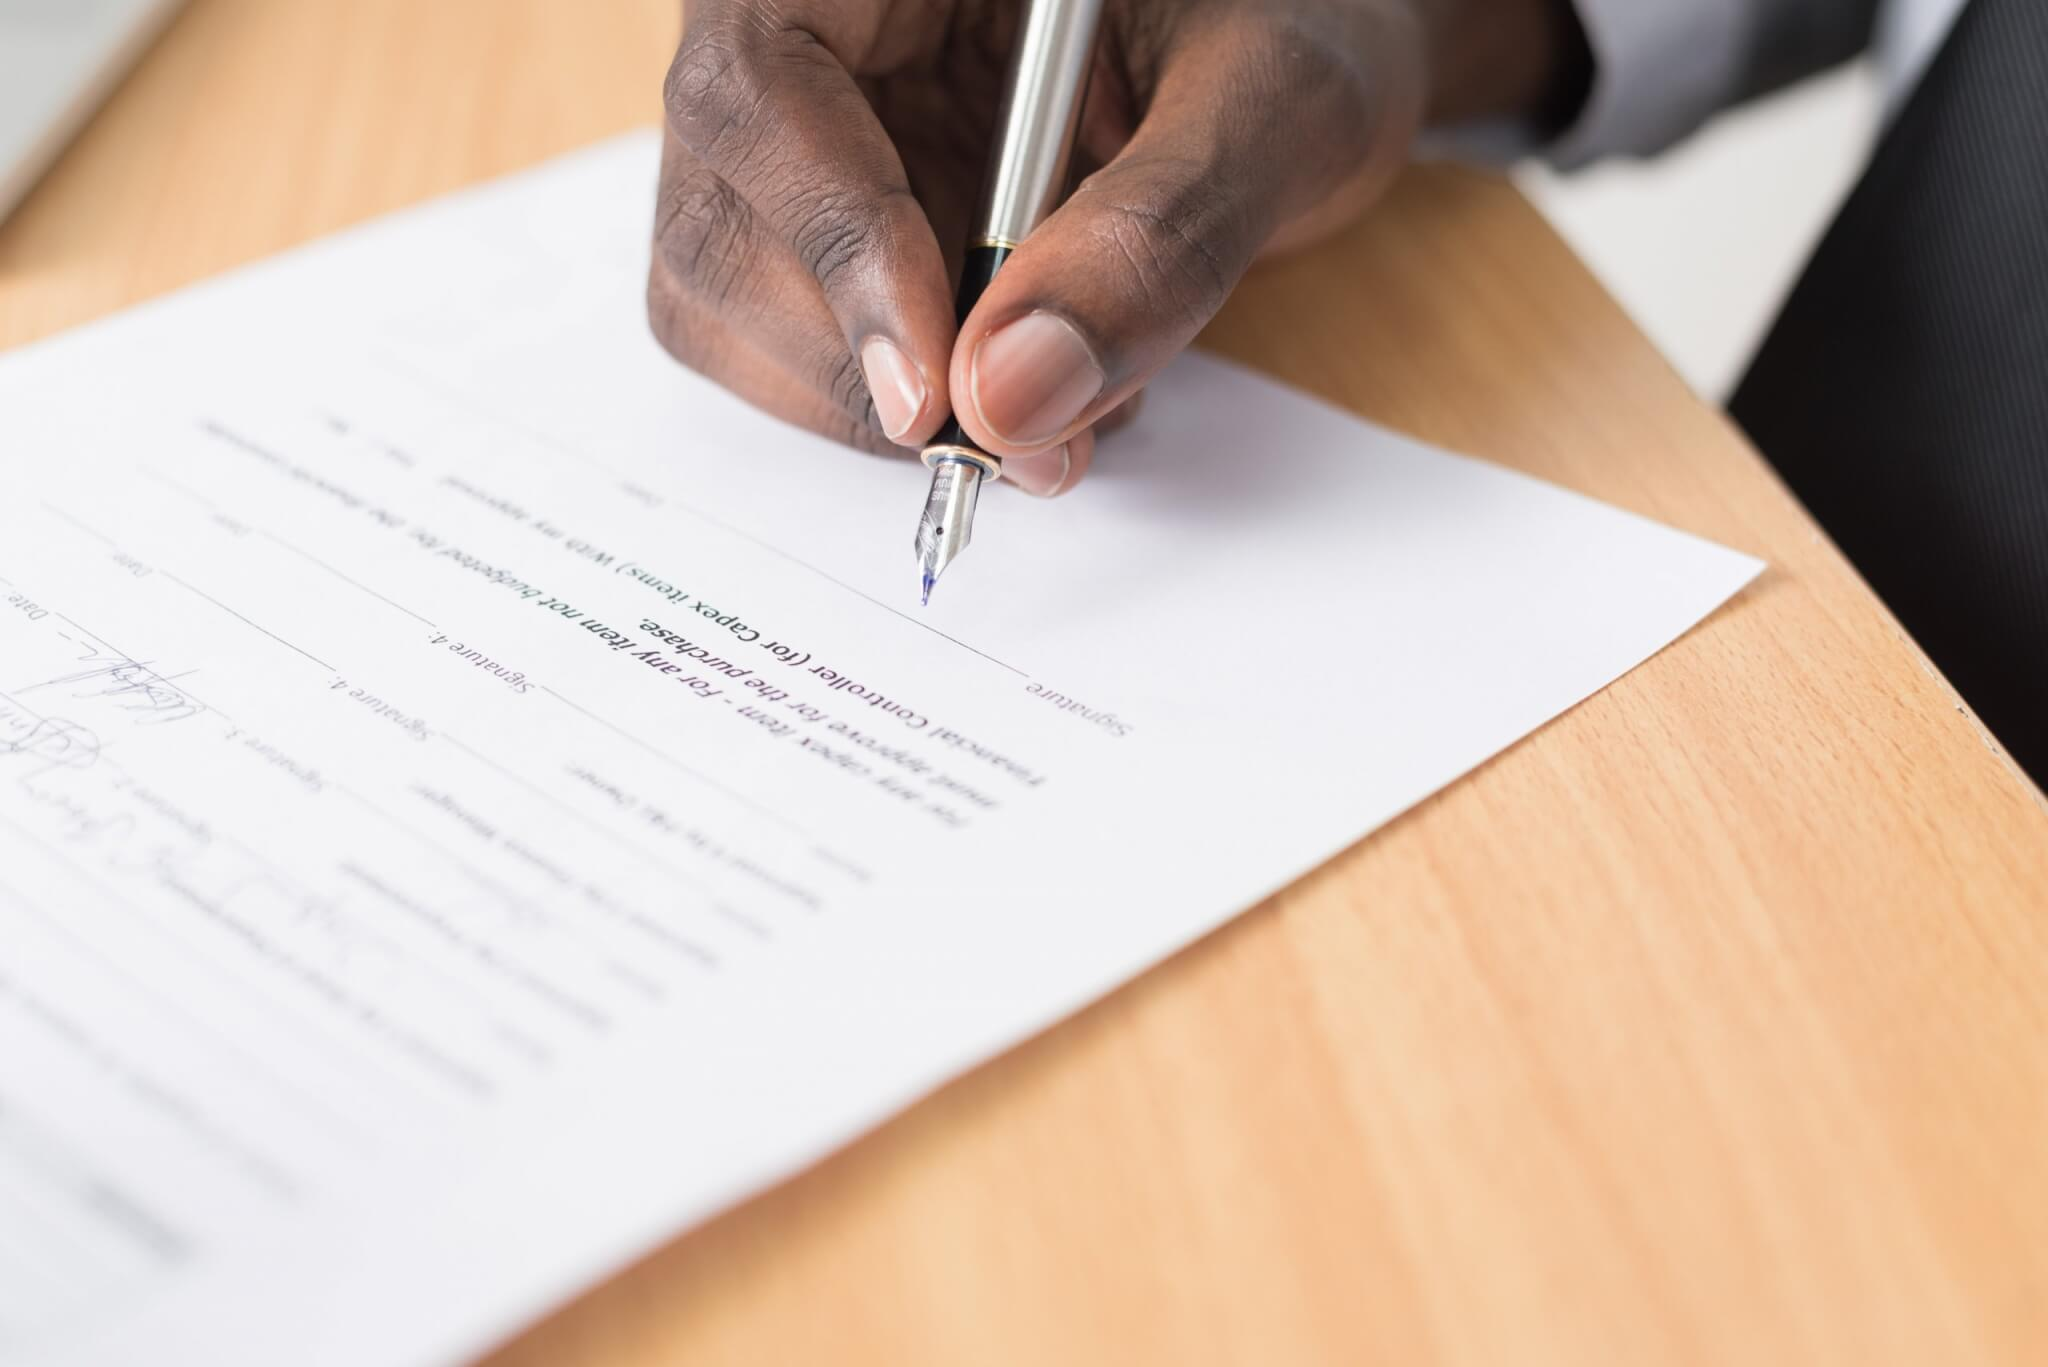 Appeals on appeal: the EAT considers the meaning of disciplinary appeals